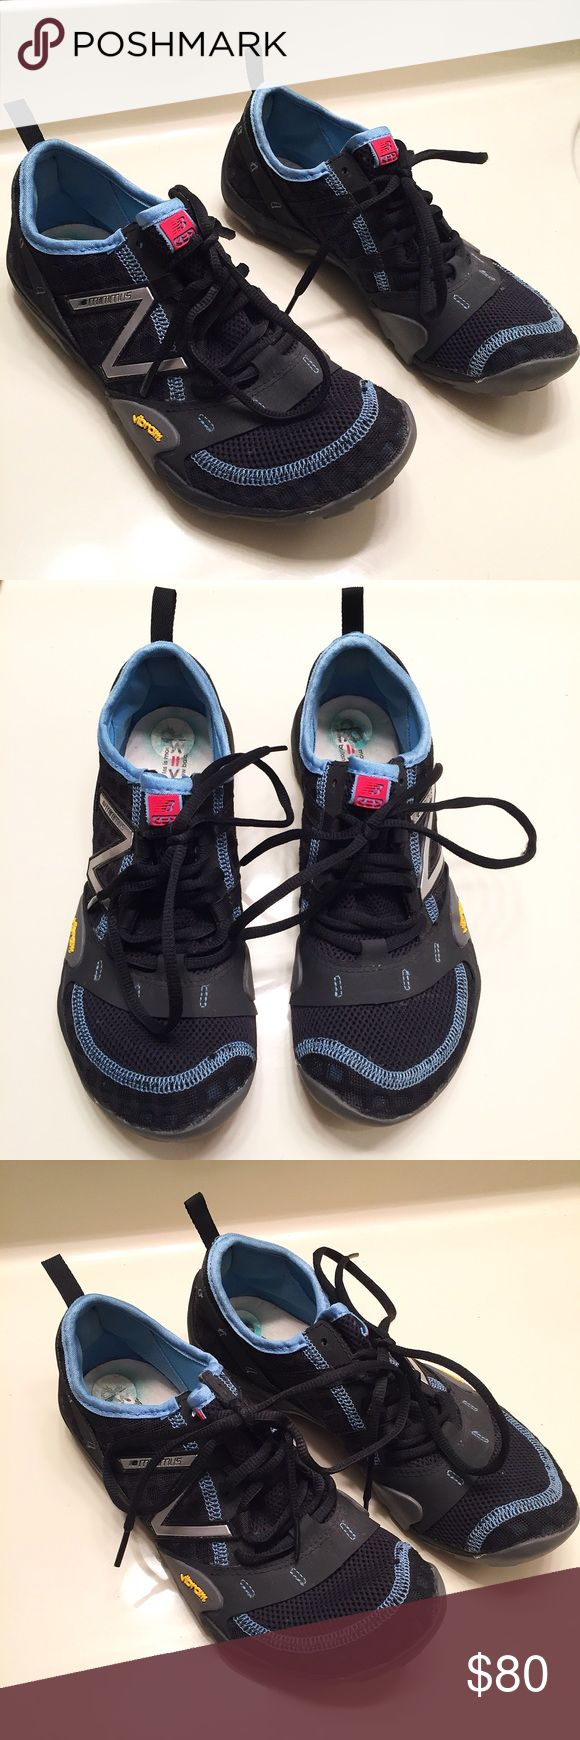 New Balance Minimus Vibram Sneakers size 8 These sneakers have been worn only one time and are in excellent condition. Women's size 8. New Balance Minimus Vibram Sneakers New Balance Shoes Sneakers